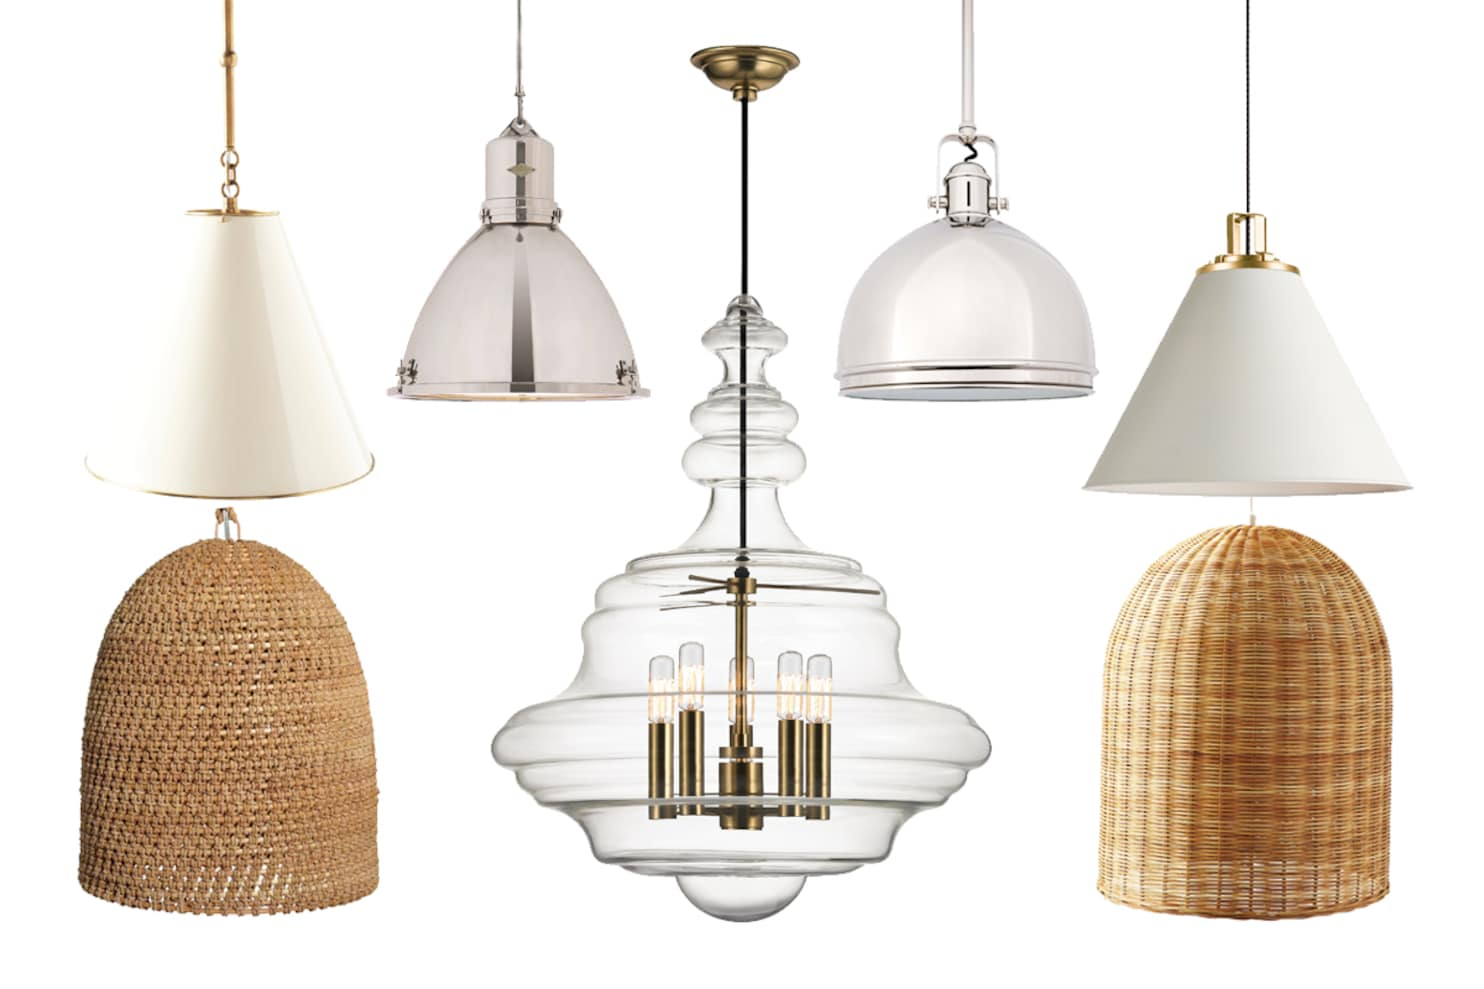 Pendant Lighting The Best Pendant Lighting For An Easy Kitchen Upgrade The